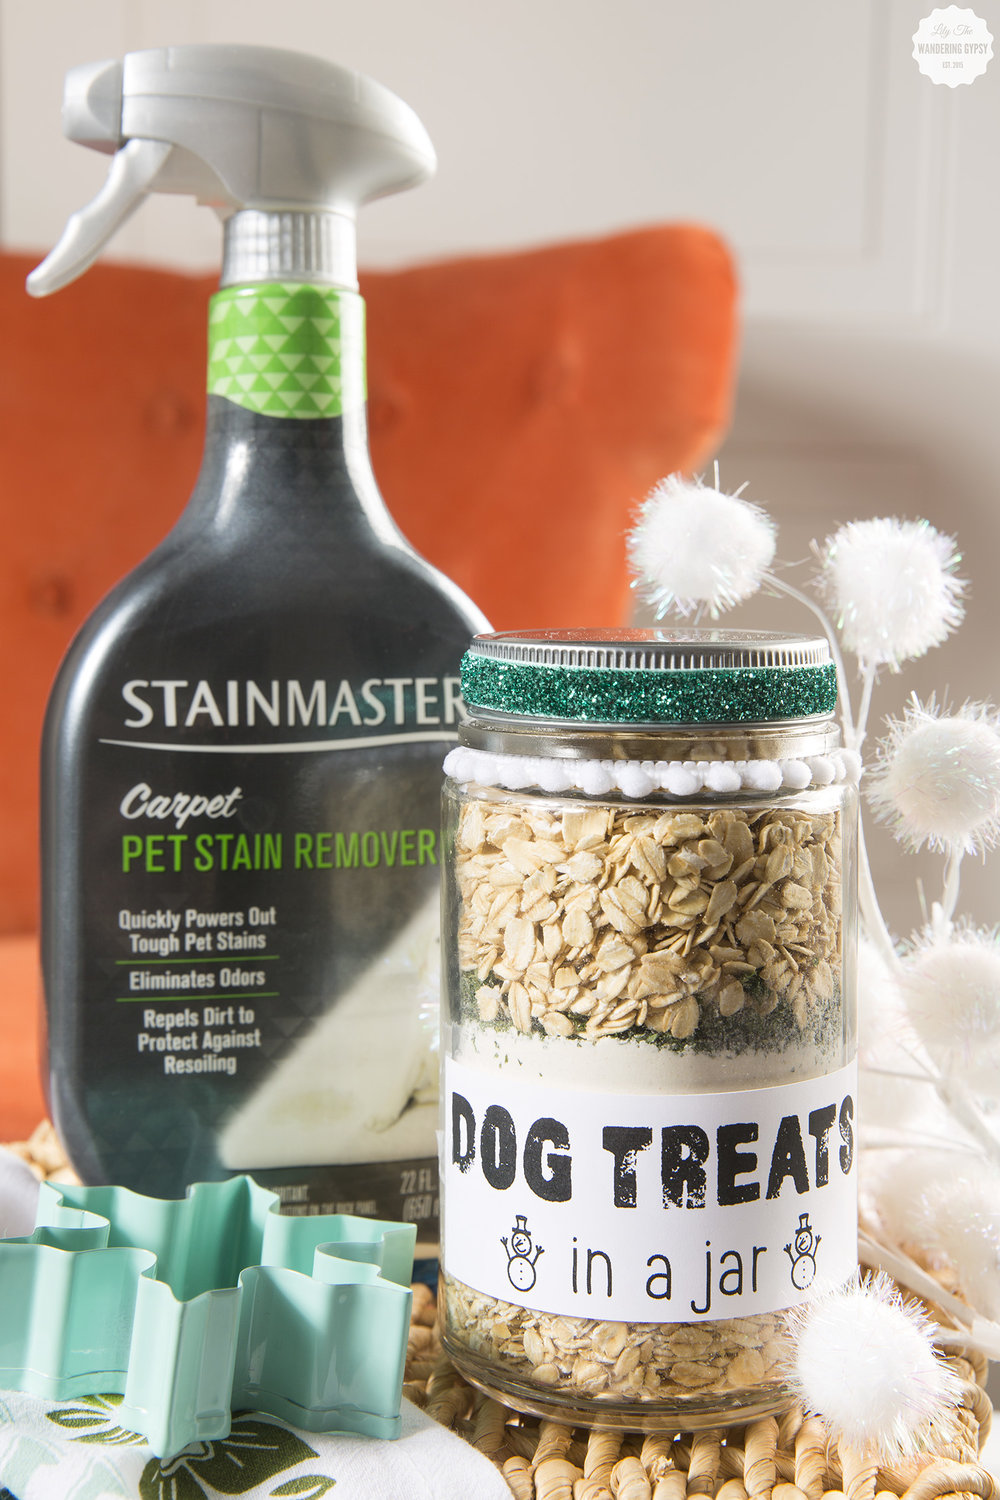 Awesome dog treat recipe